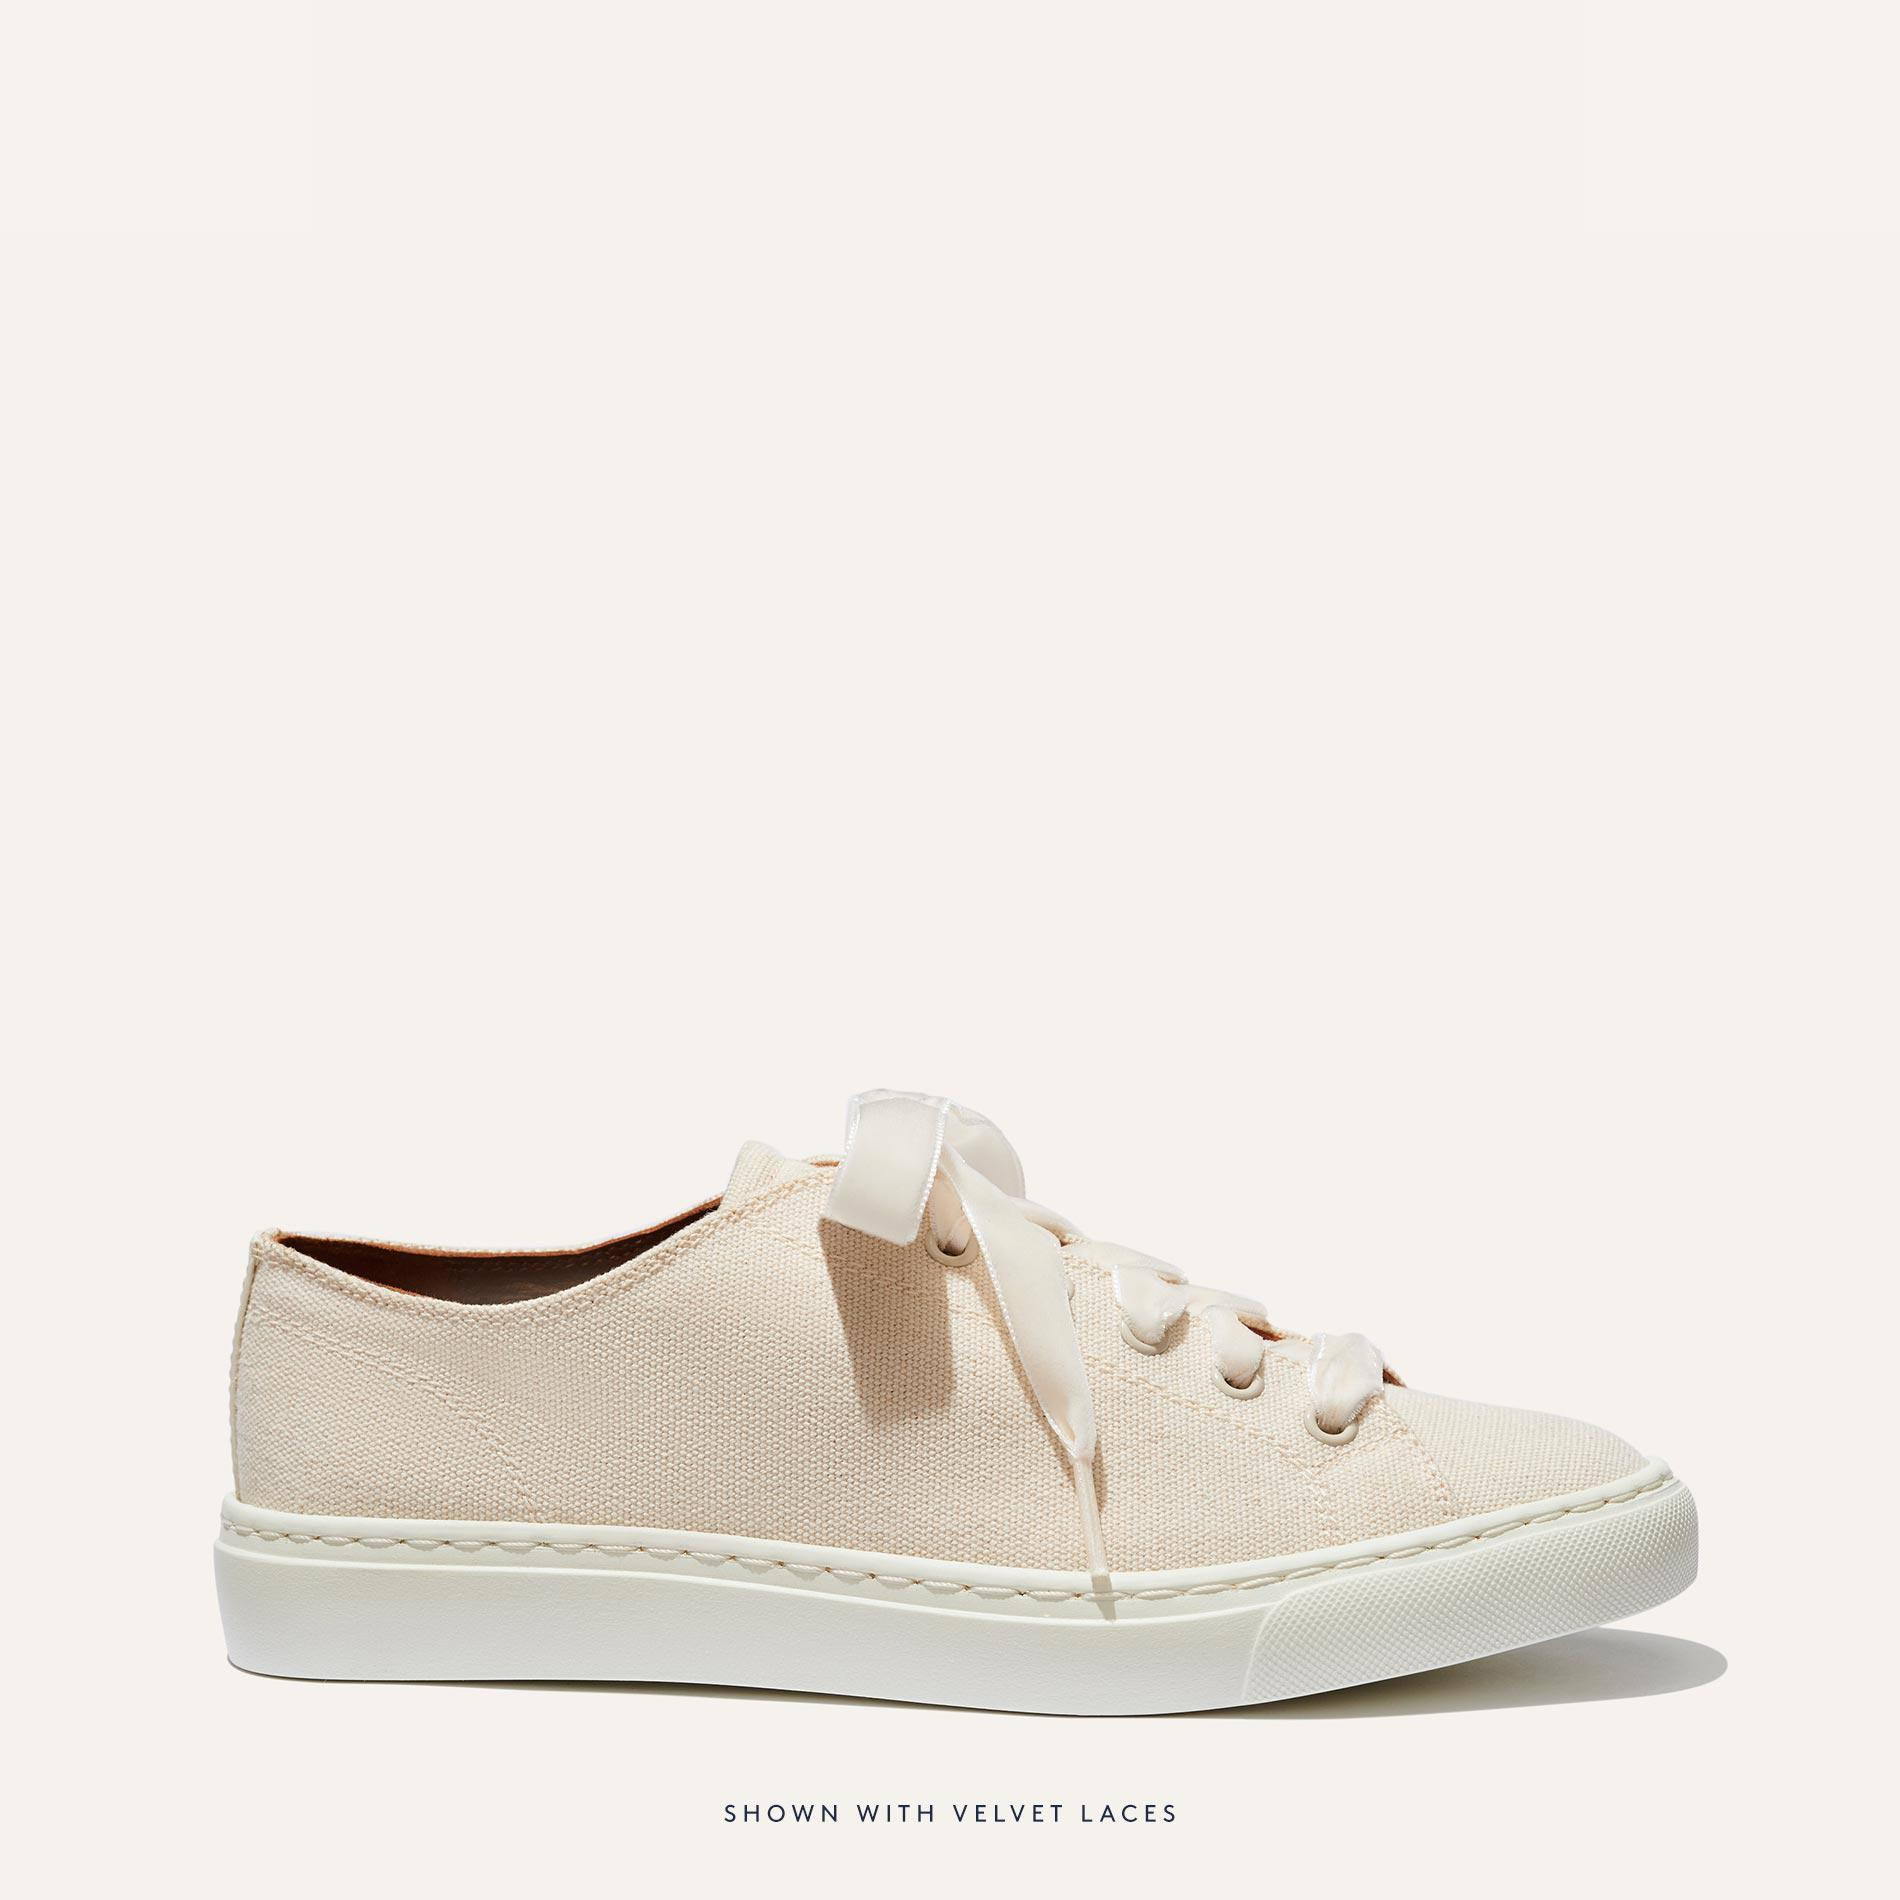 The Summer Sneaker - Ivory Canvas